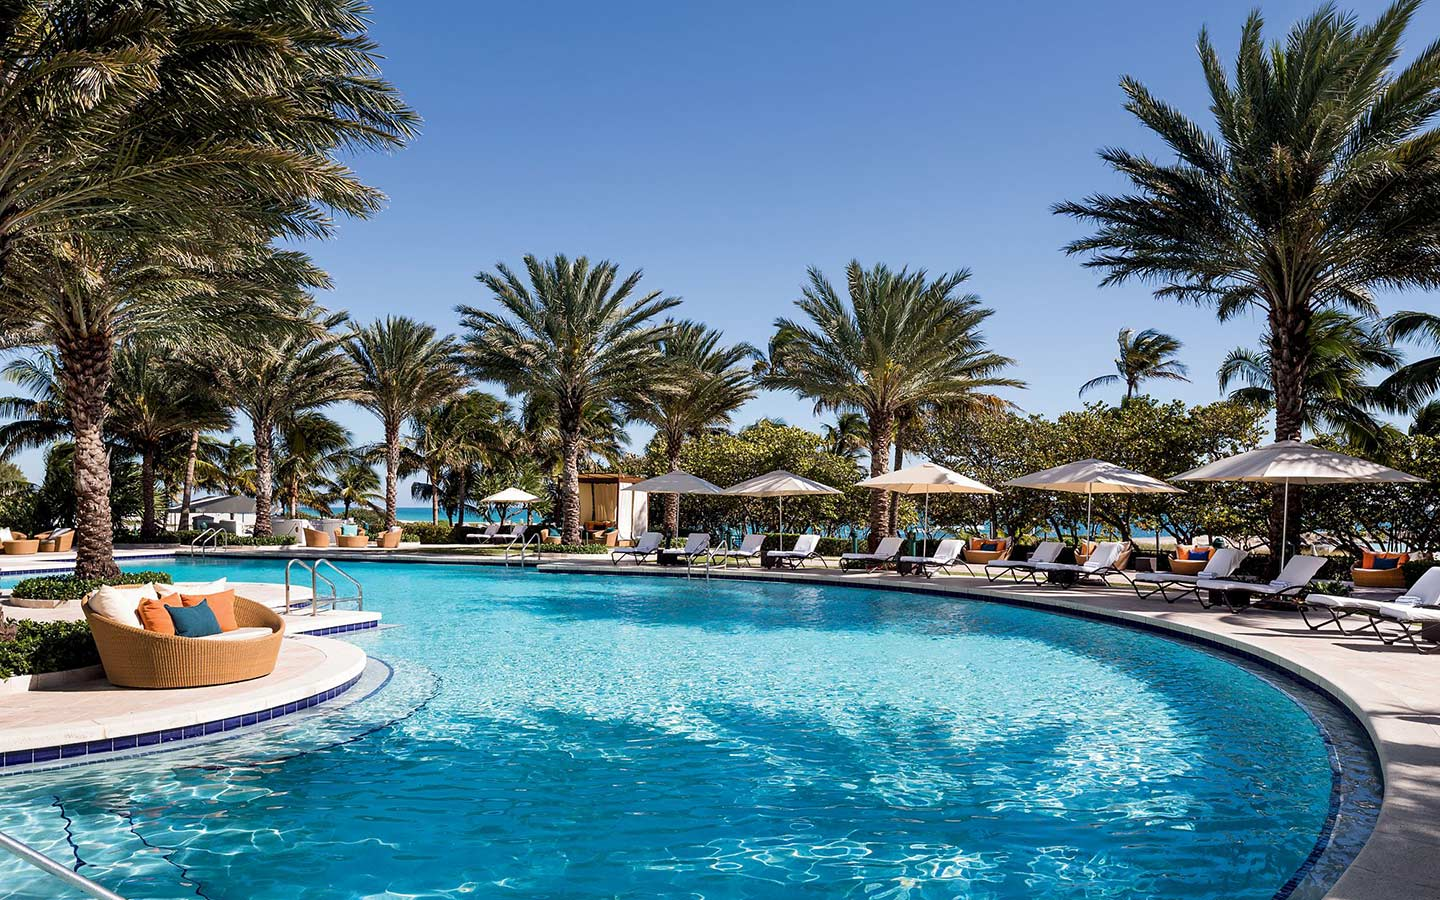 ritz Bal Harbour piscina